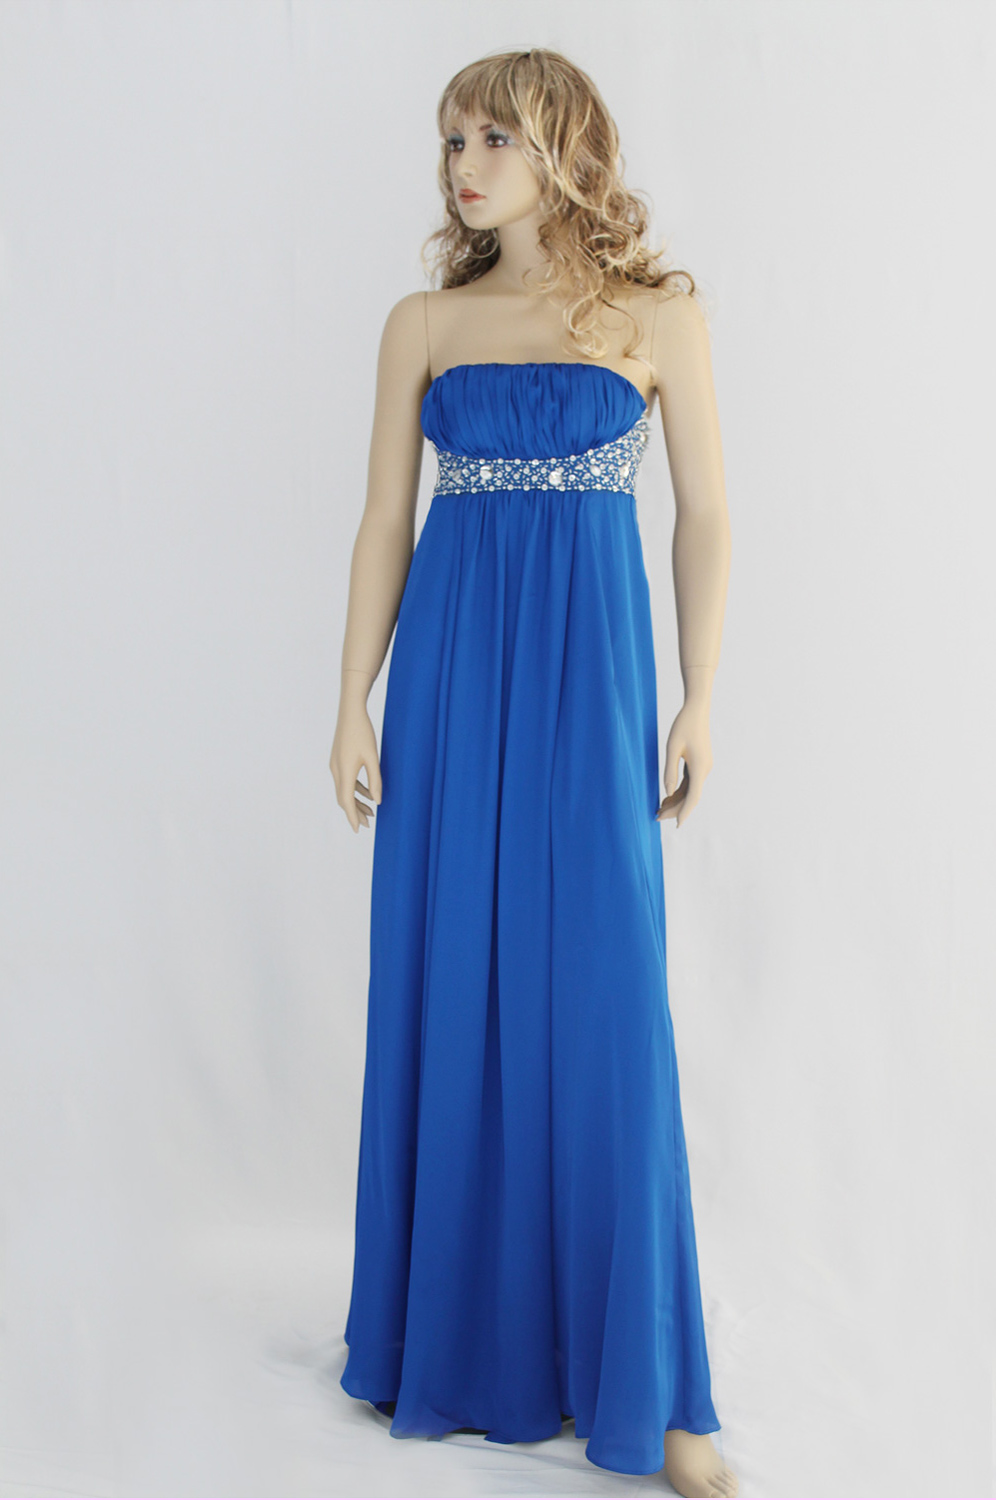 On sale !! eDressit Prom Gown Evening Dress (00777405g)